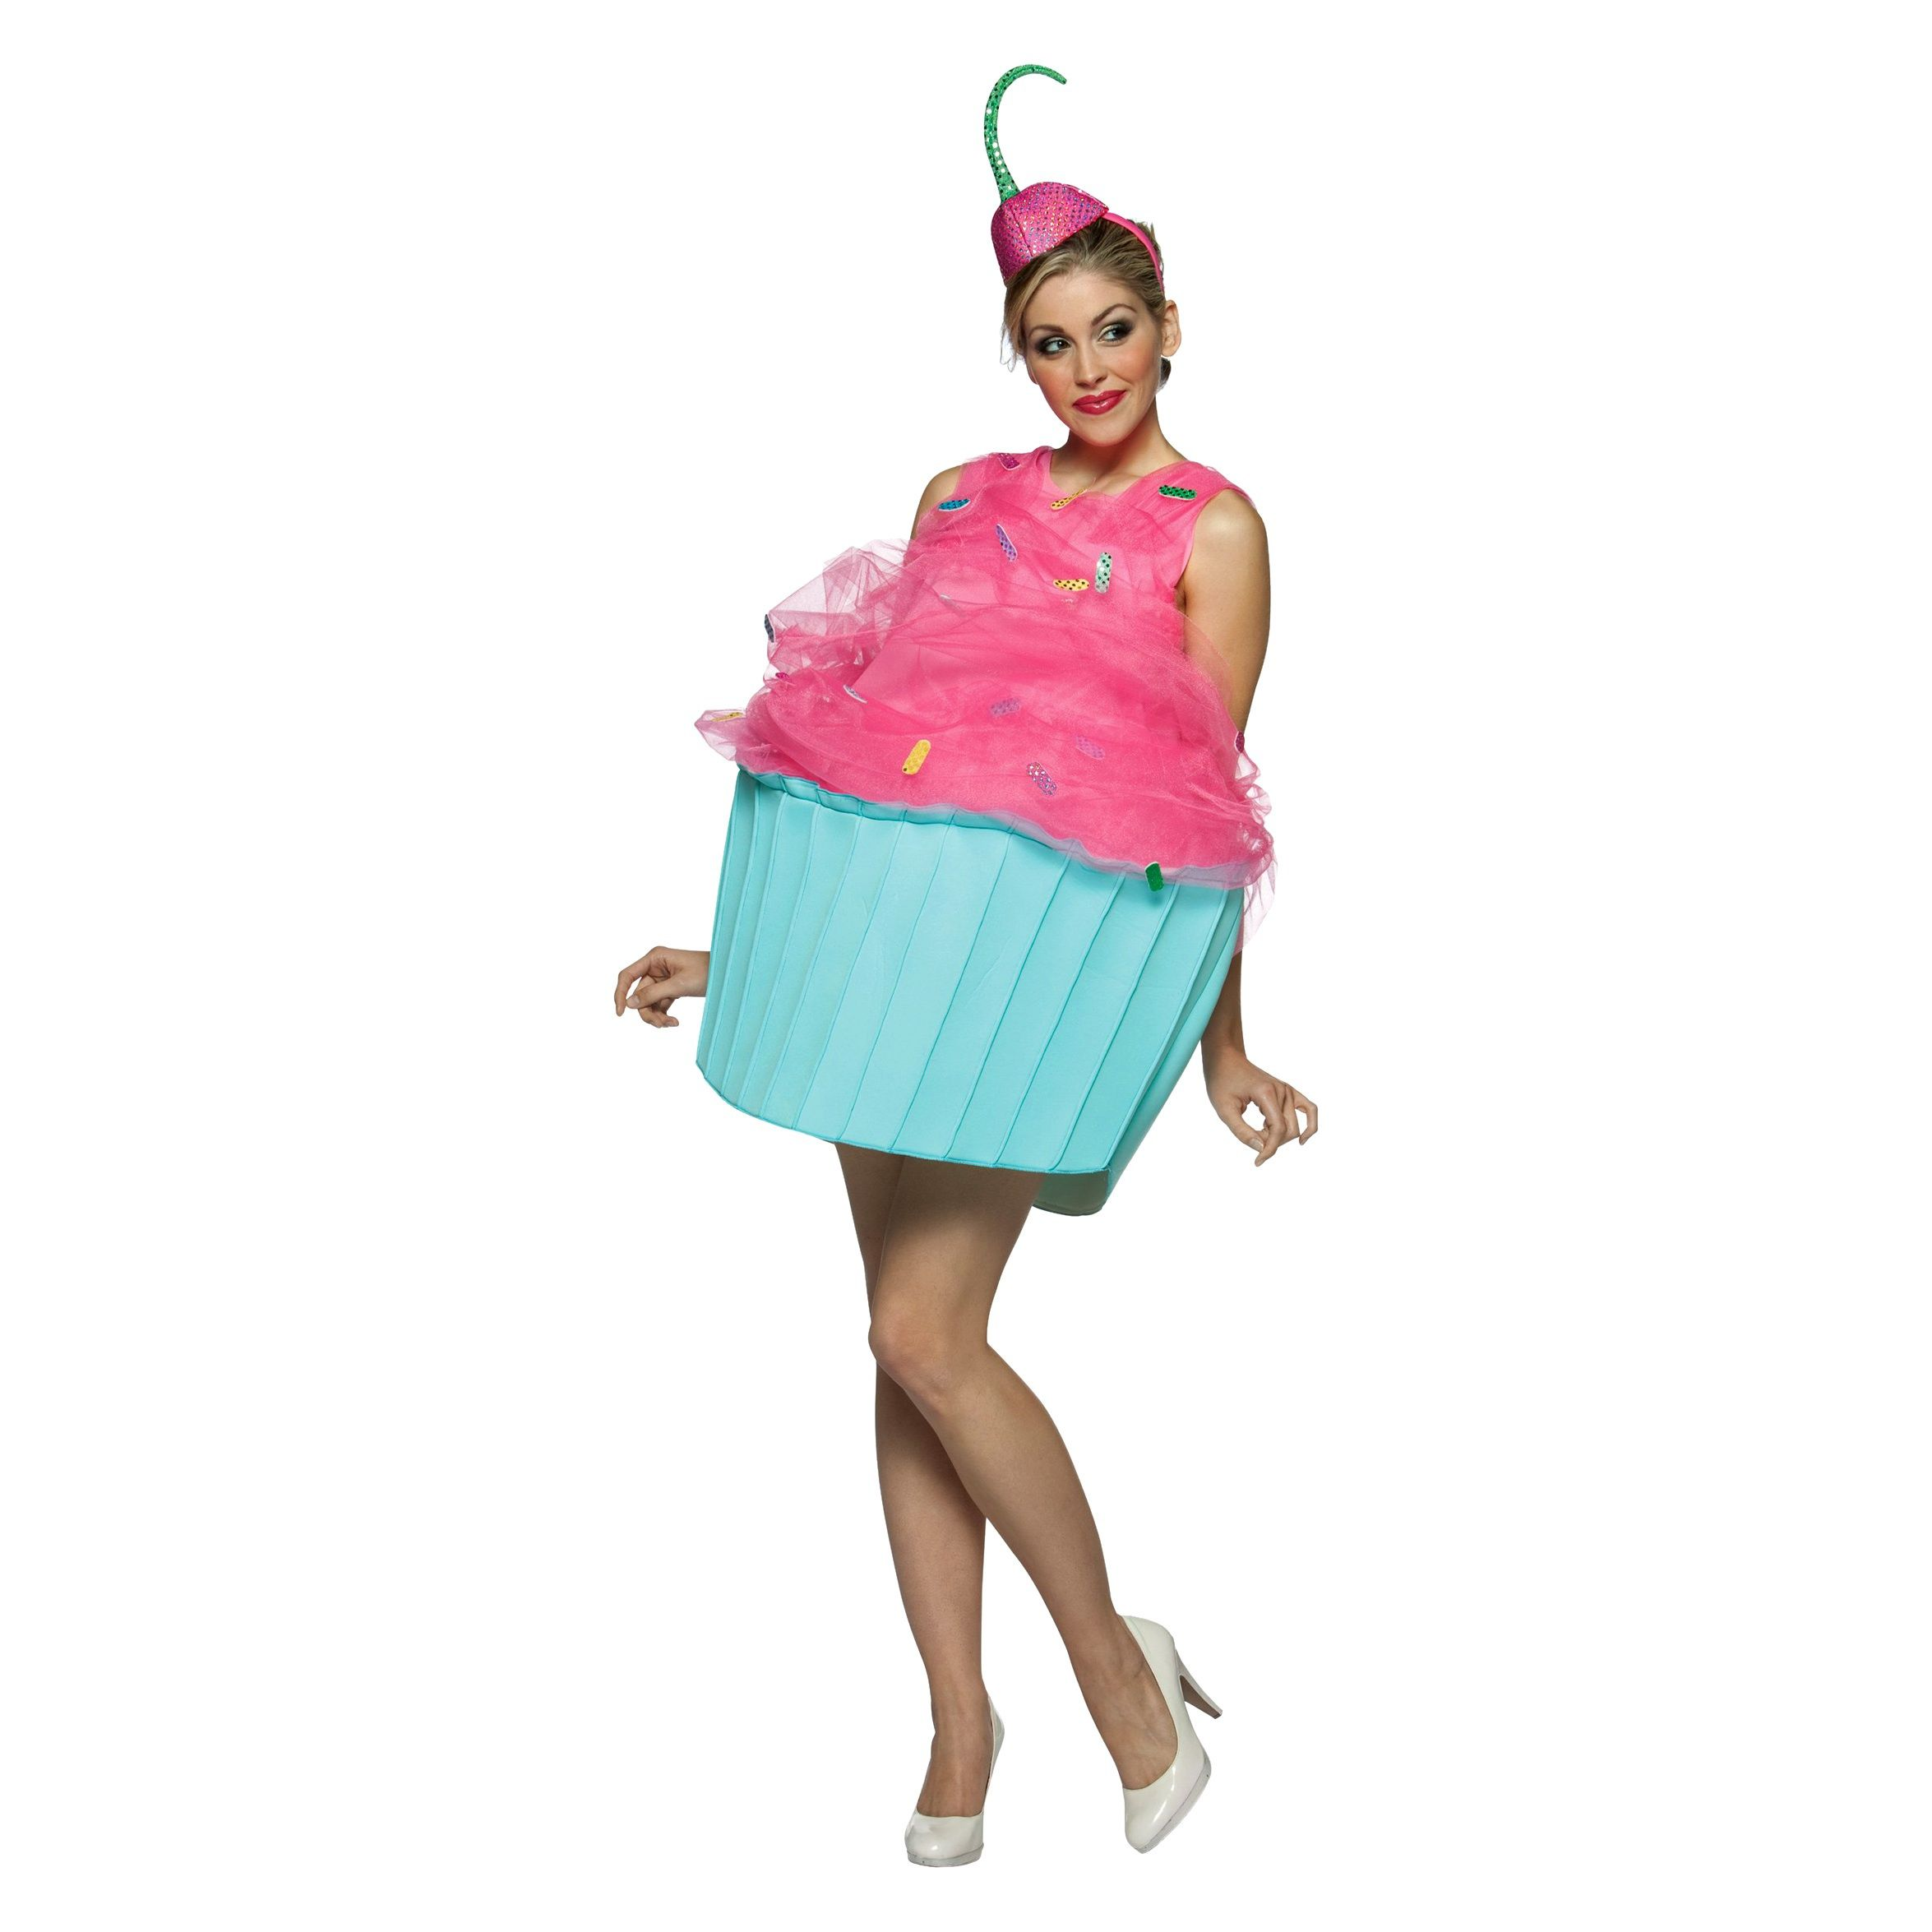 Get Tricked Out at NYC's Great Costume Stores Cupcake